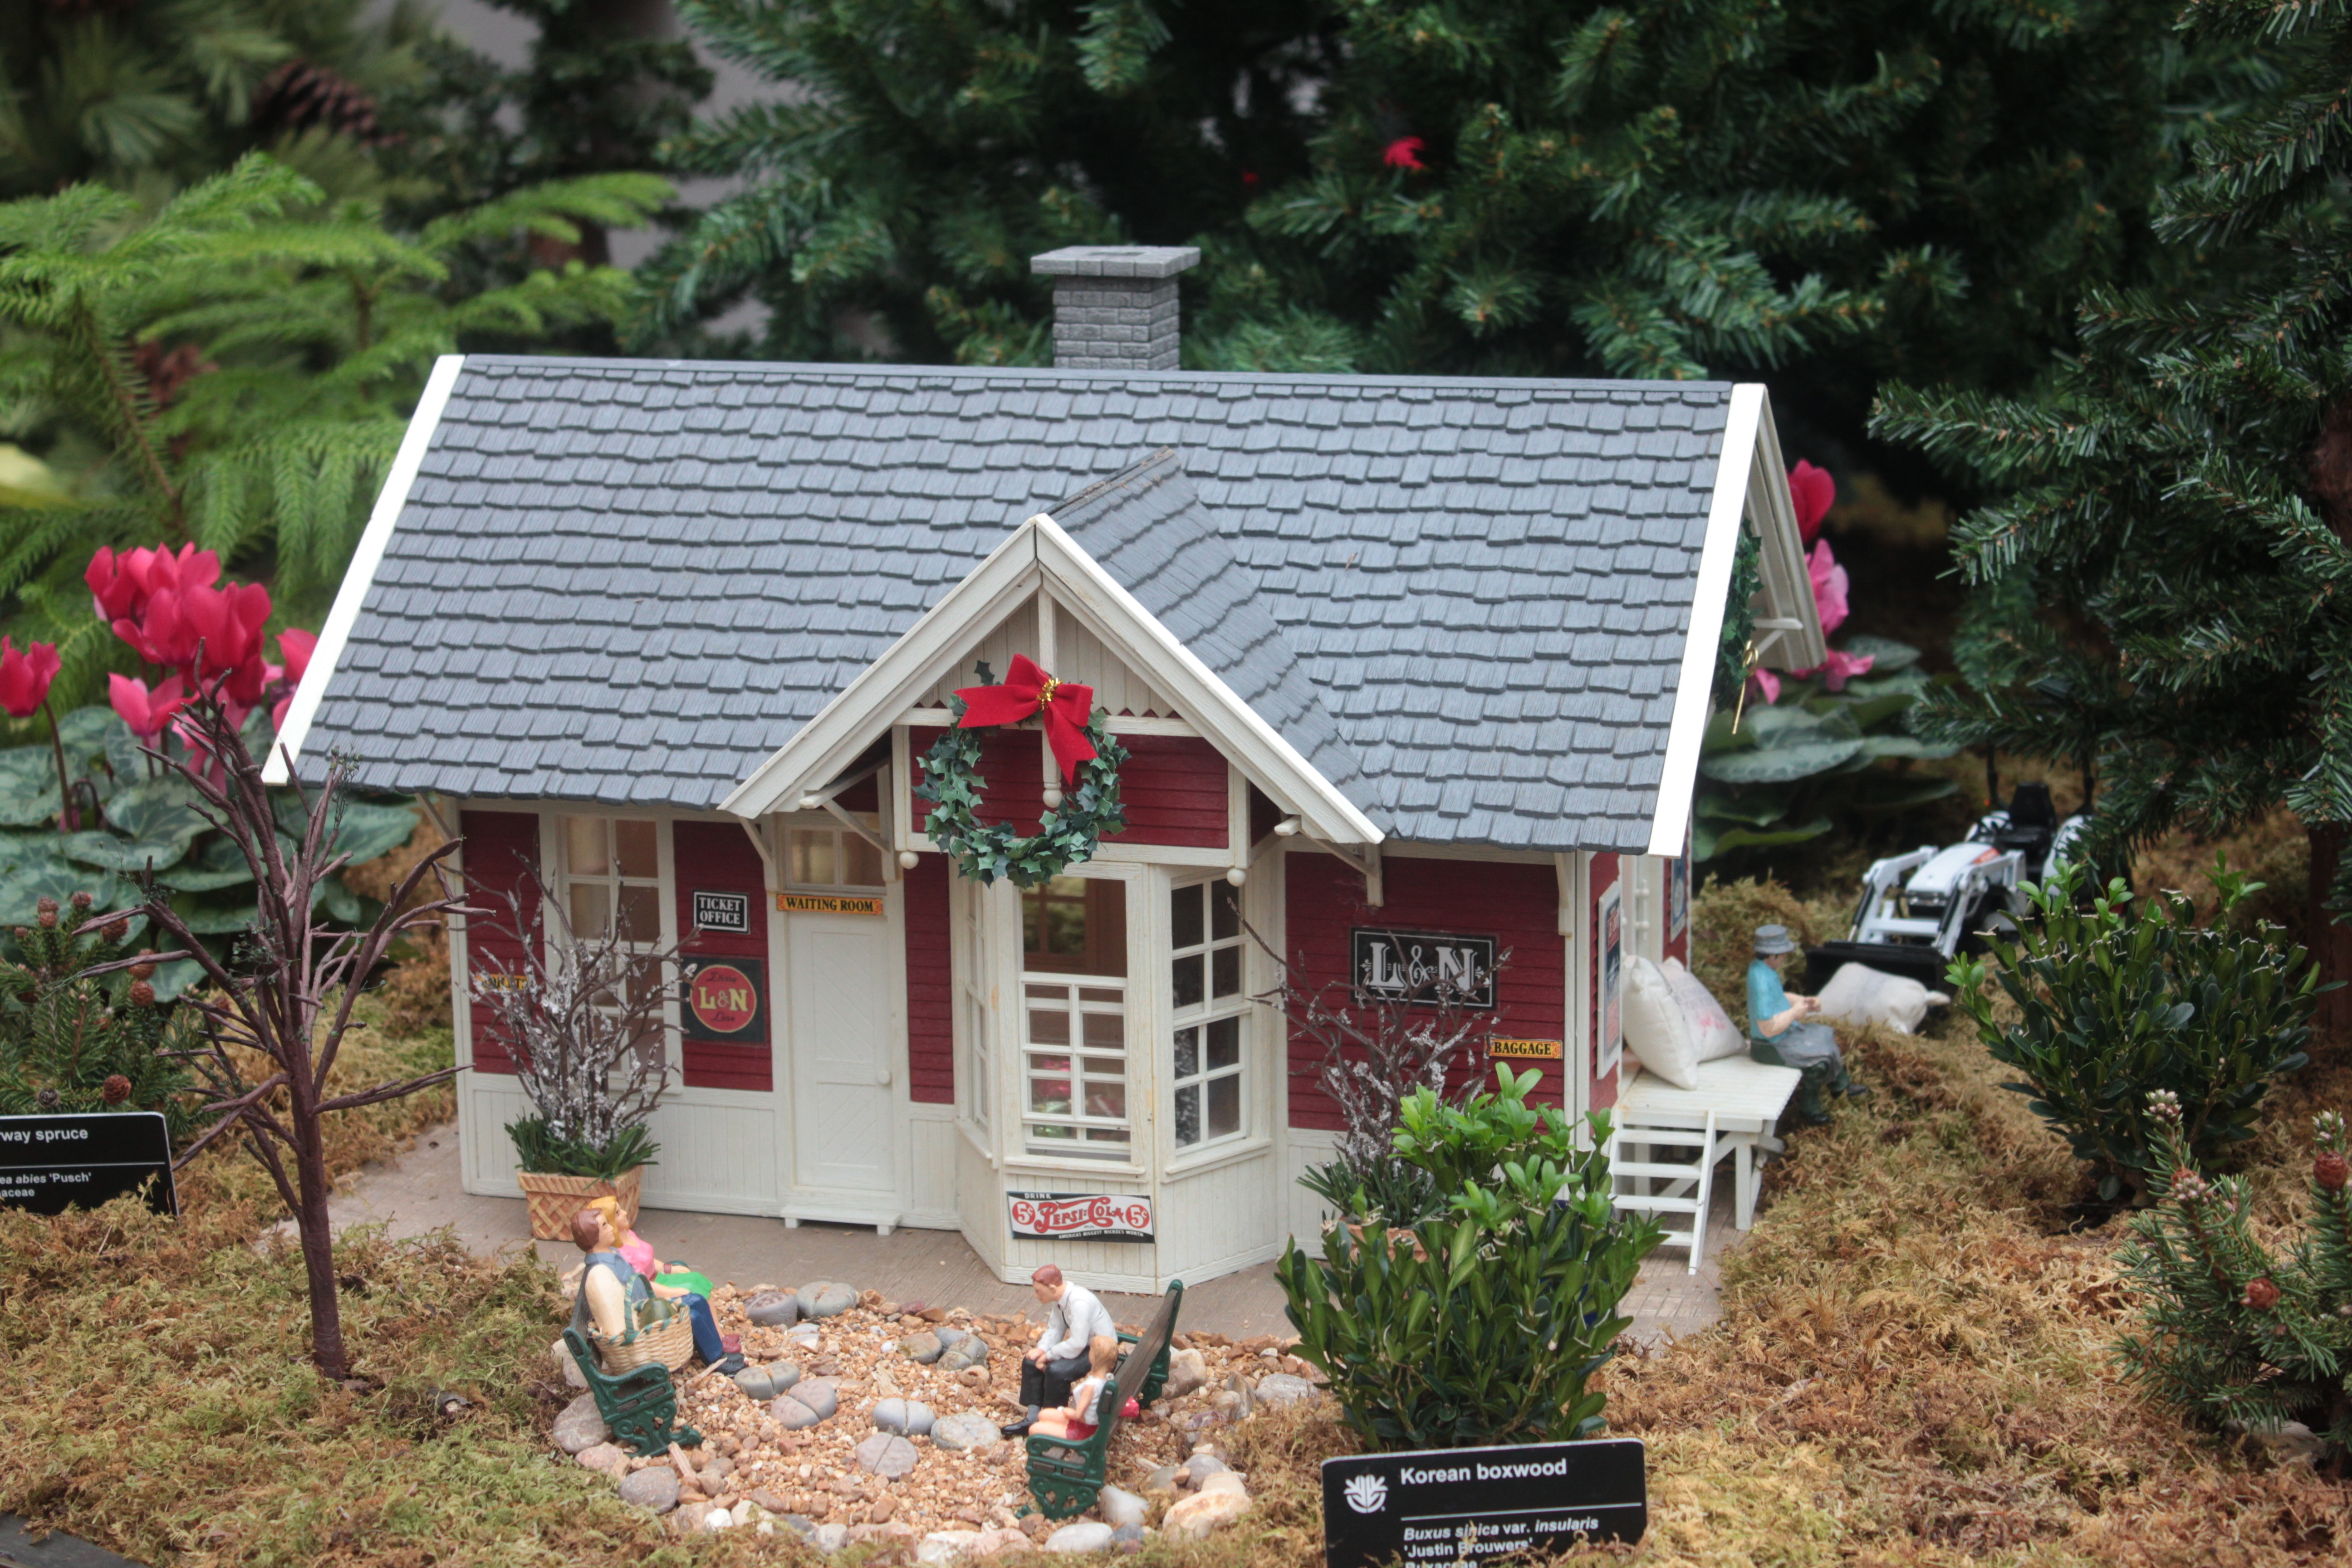 ... Botanical Garden Is The Gardenland Express Holiday Flower And Train  Show. In Addition To Charming Vignettes Depicting Different Wintry Scenes,  ...